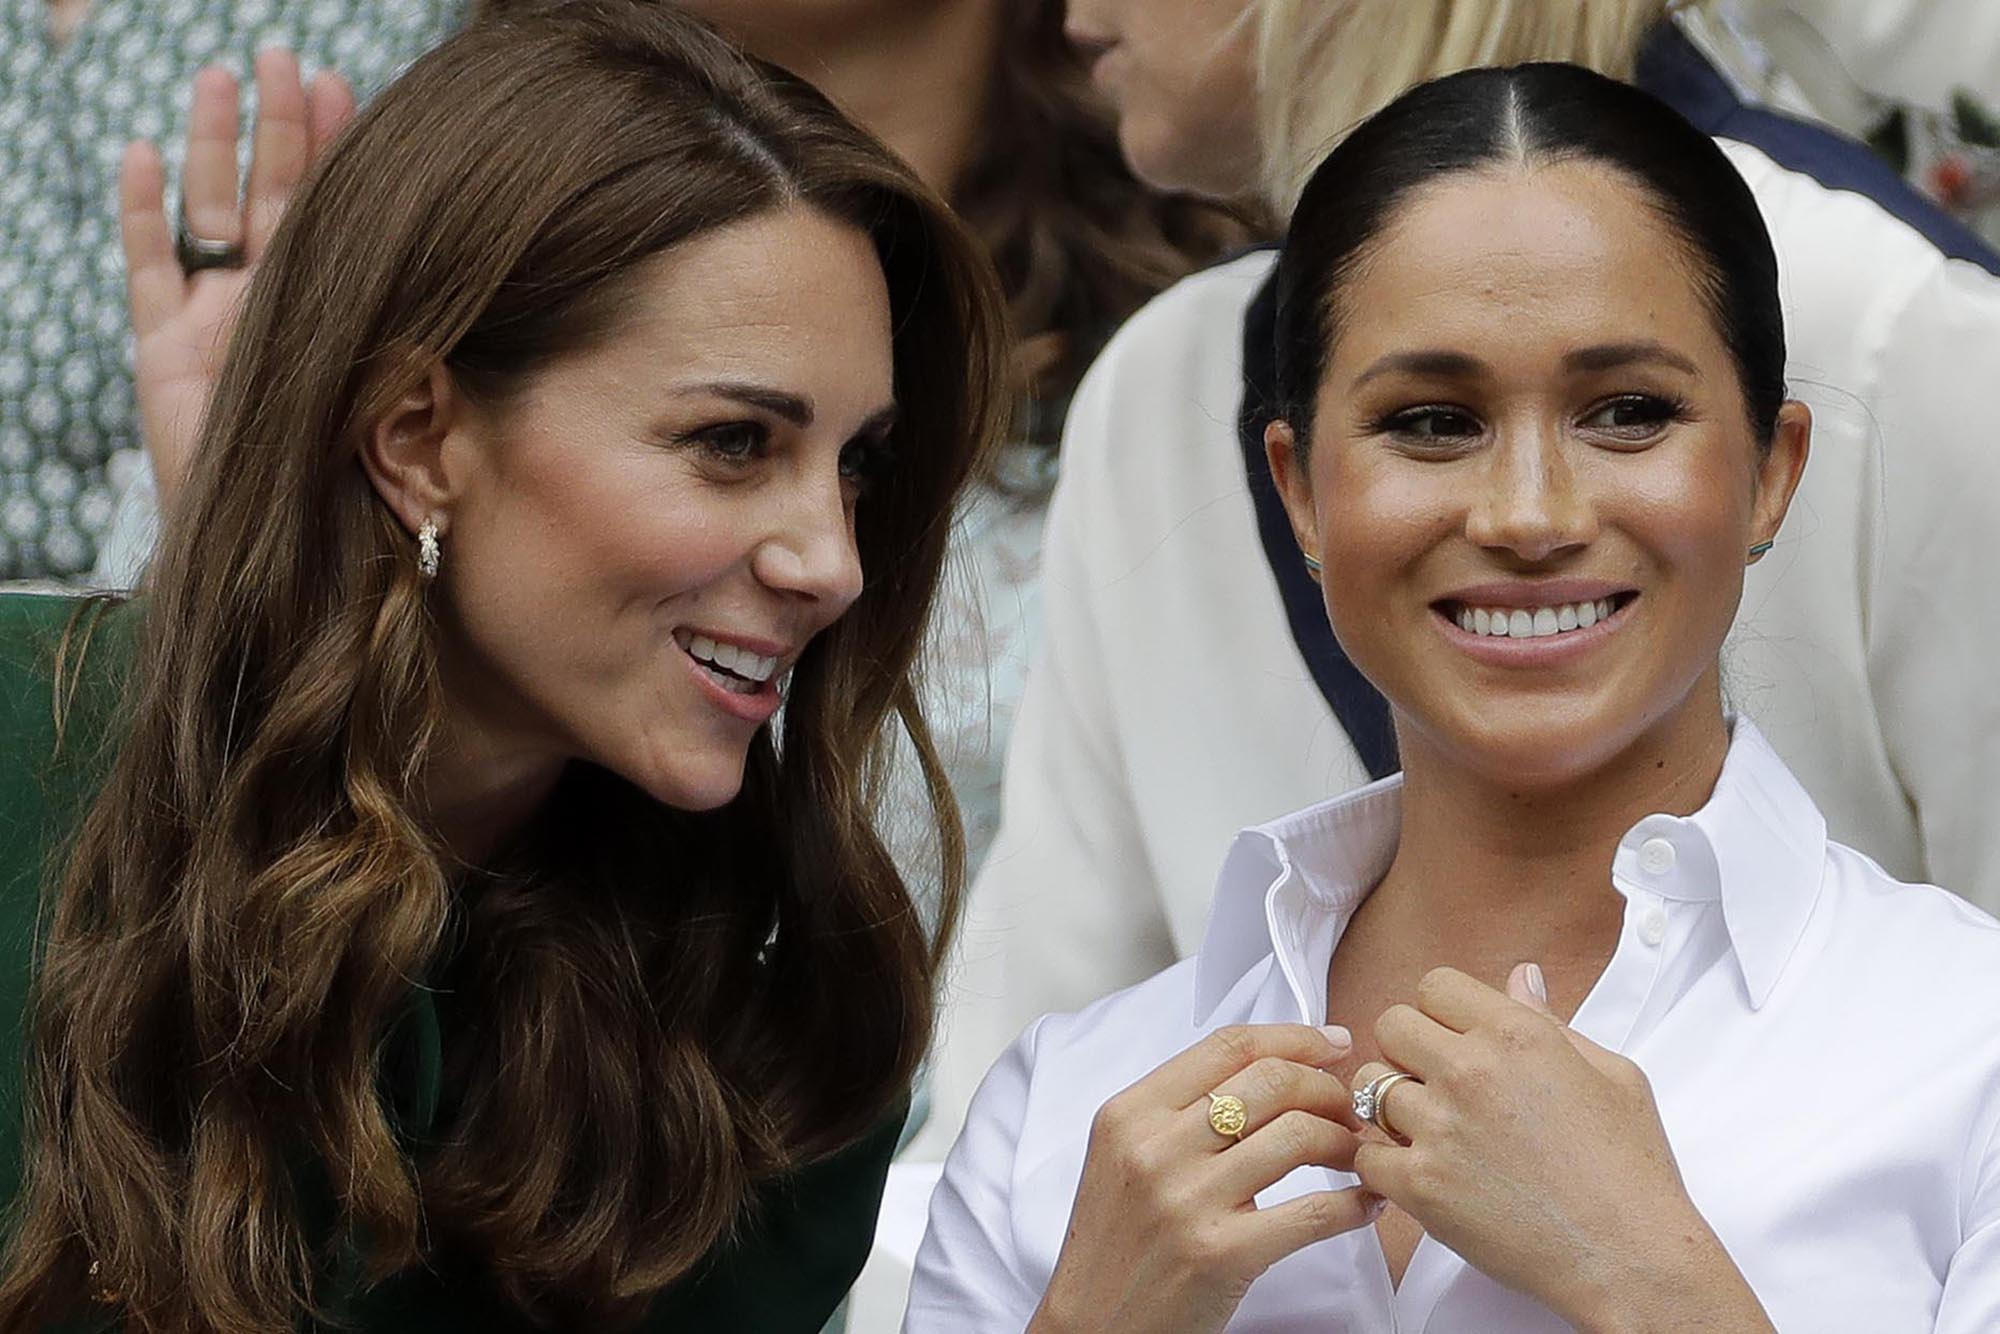 The Best Meghan Markle Vs Kate Middleton Wedding